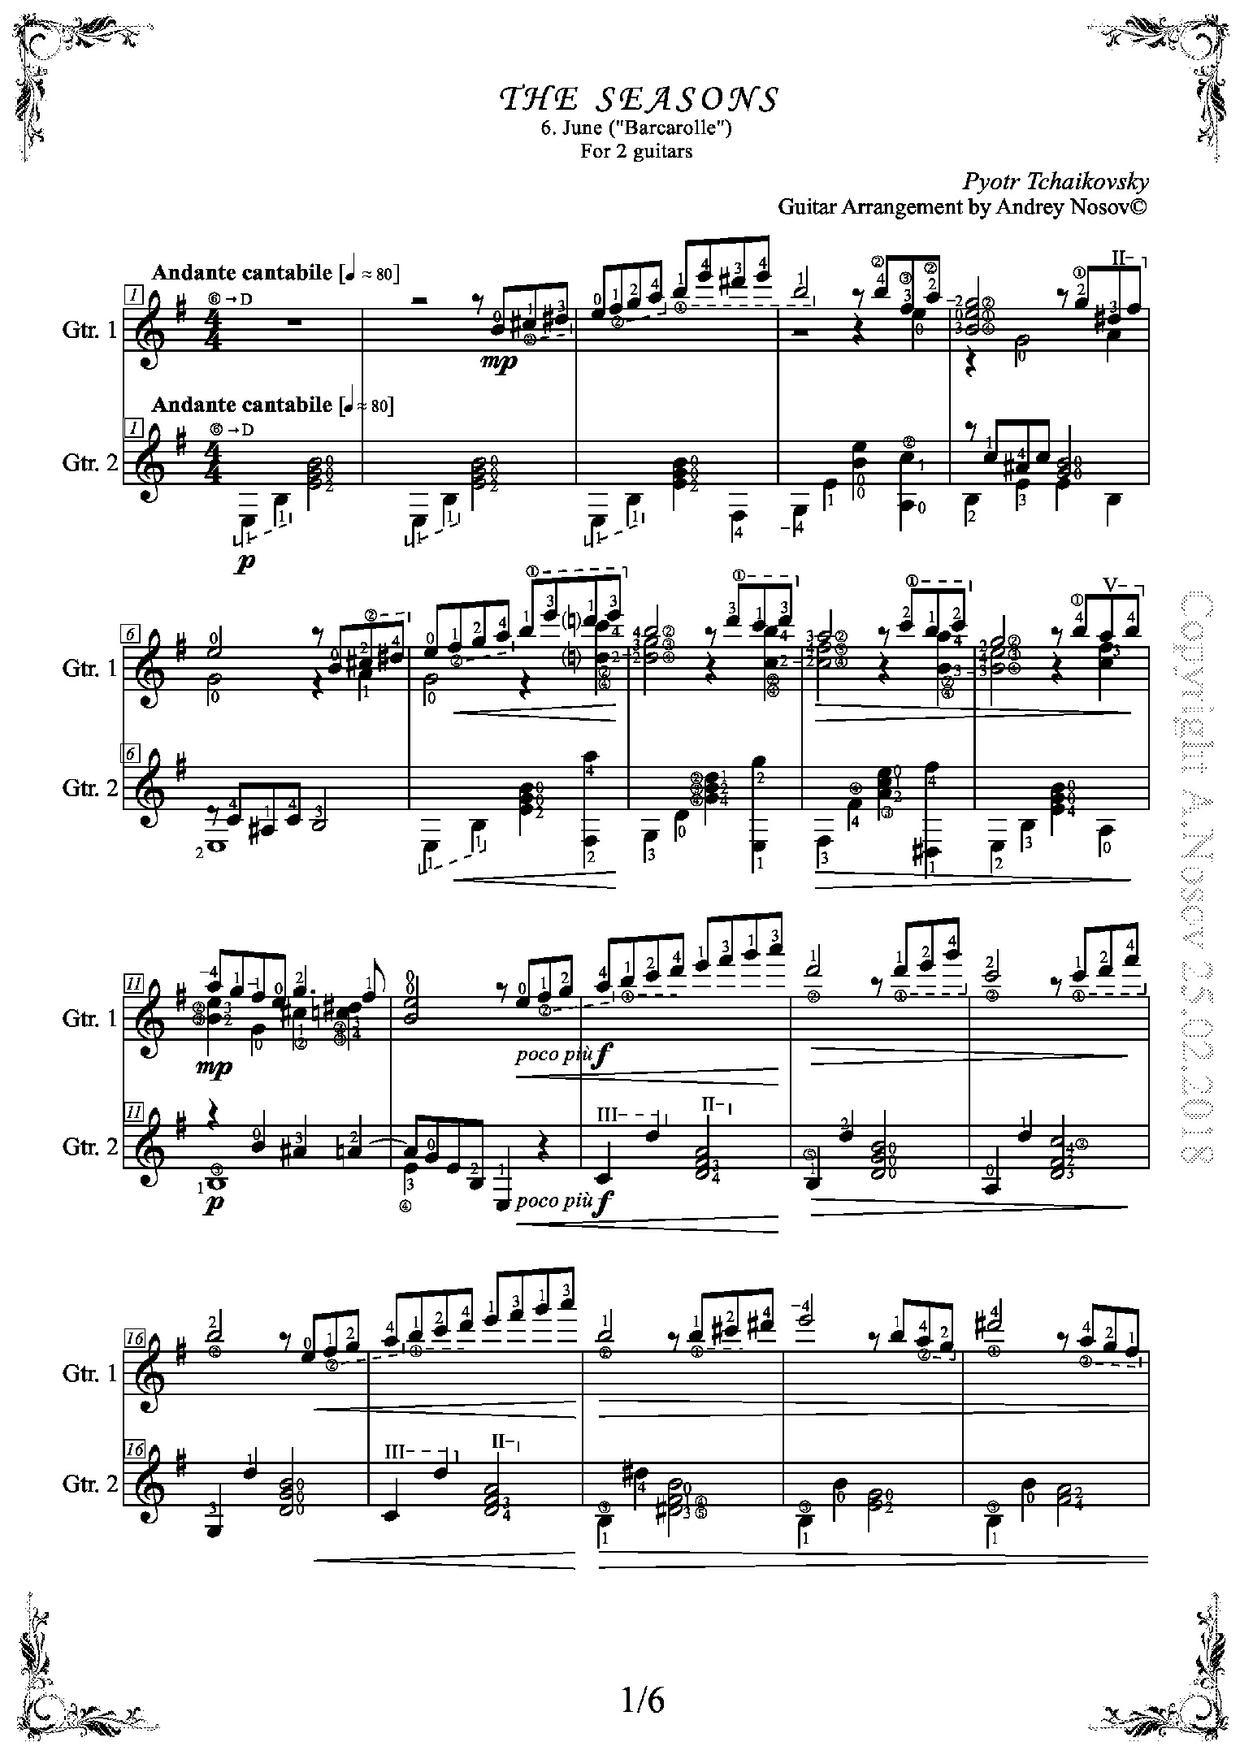 The Seasons, June (P.Tchaikovsky) Sheet Music for Guitar Duets